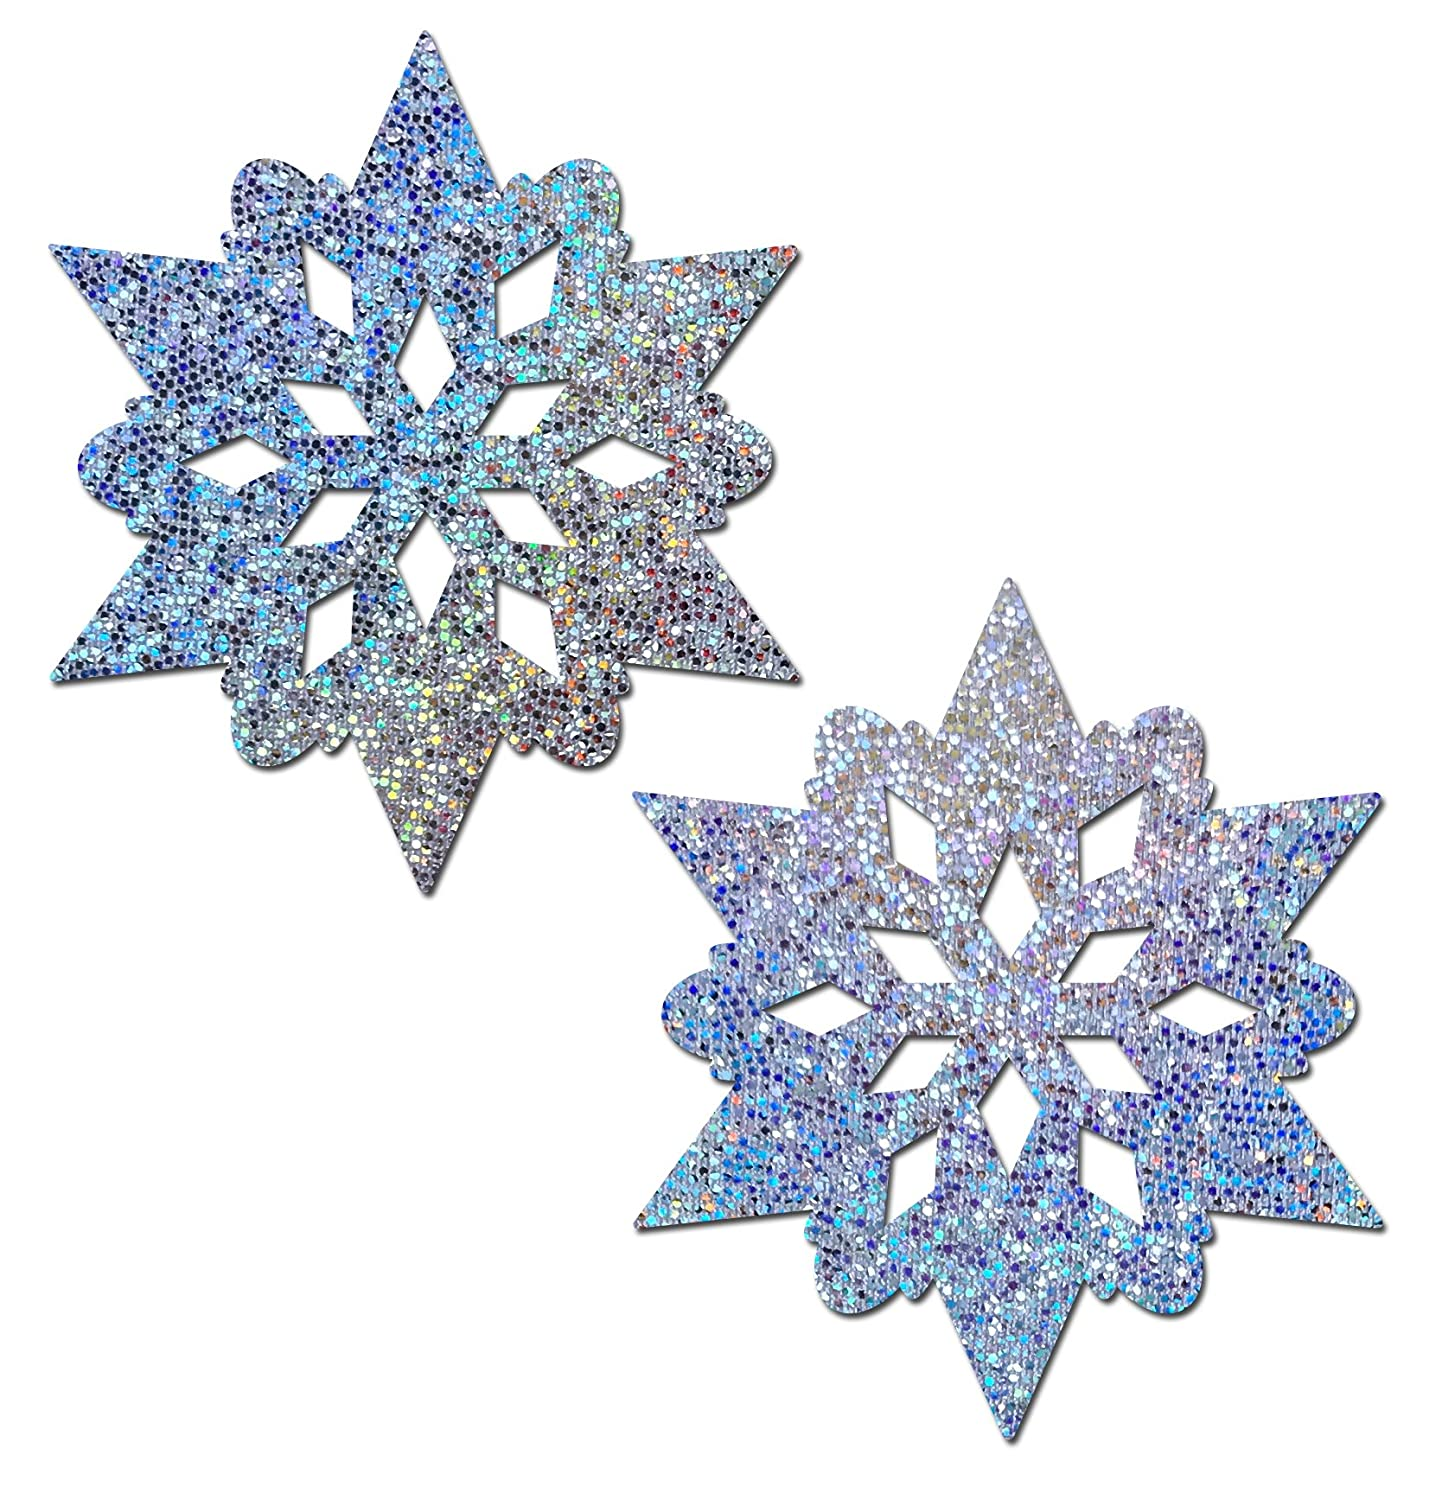 Pastease Women's Silver Glitter Snowflakes with Nipple Guards Nipple Pasties o/s SNW-GLT-SL